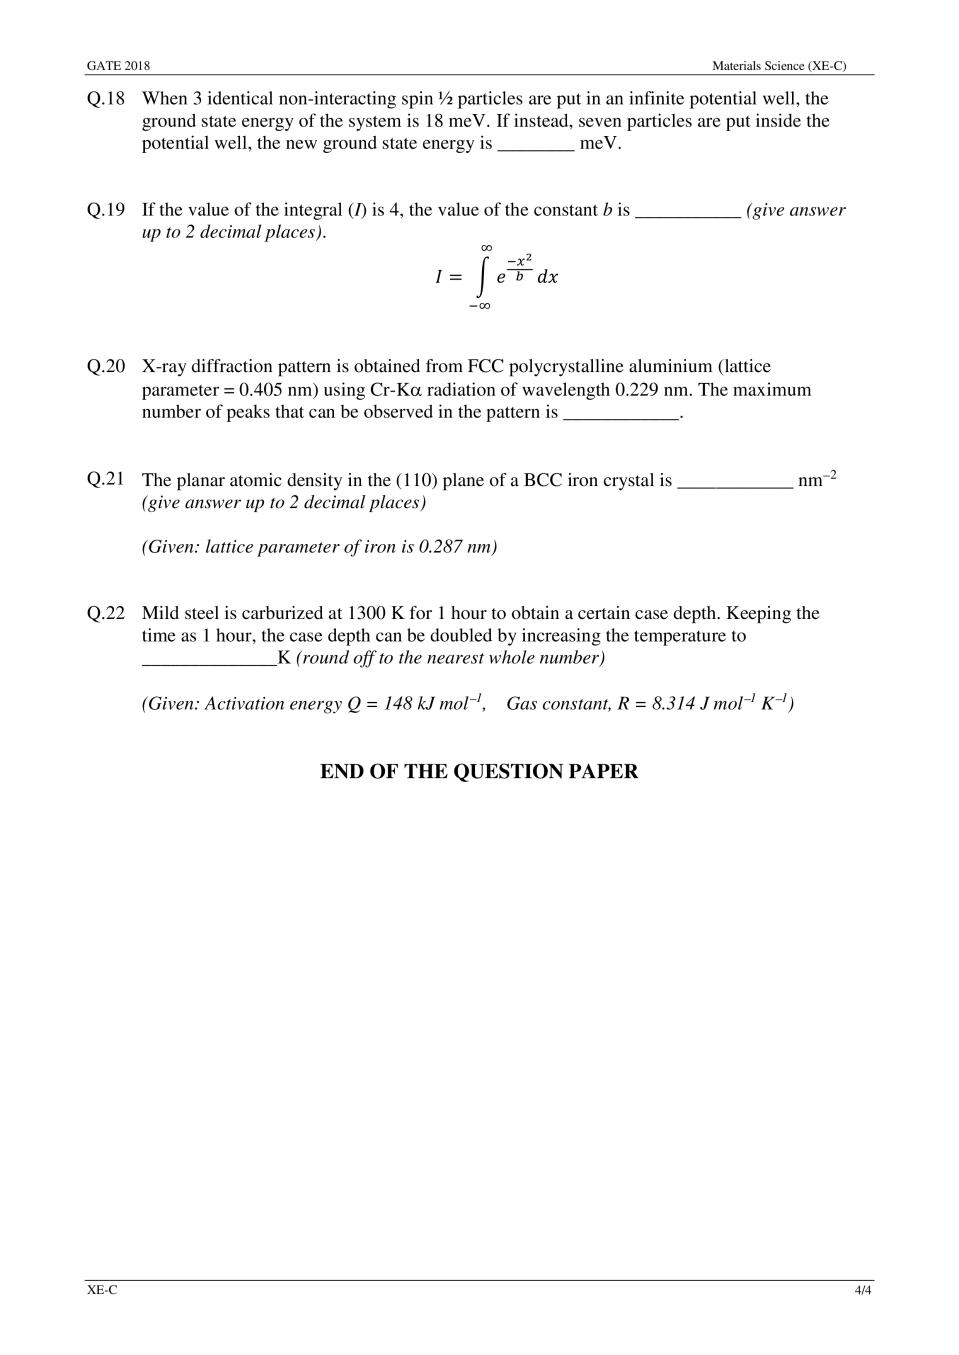 GATE 2018 Materials Science (XE-C) Question Paper with Answer